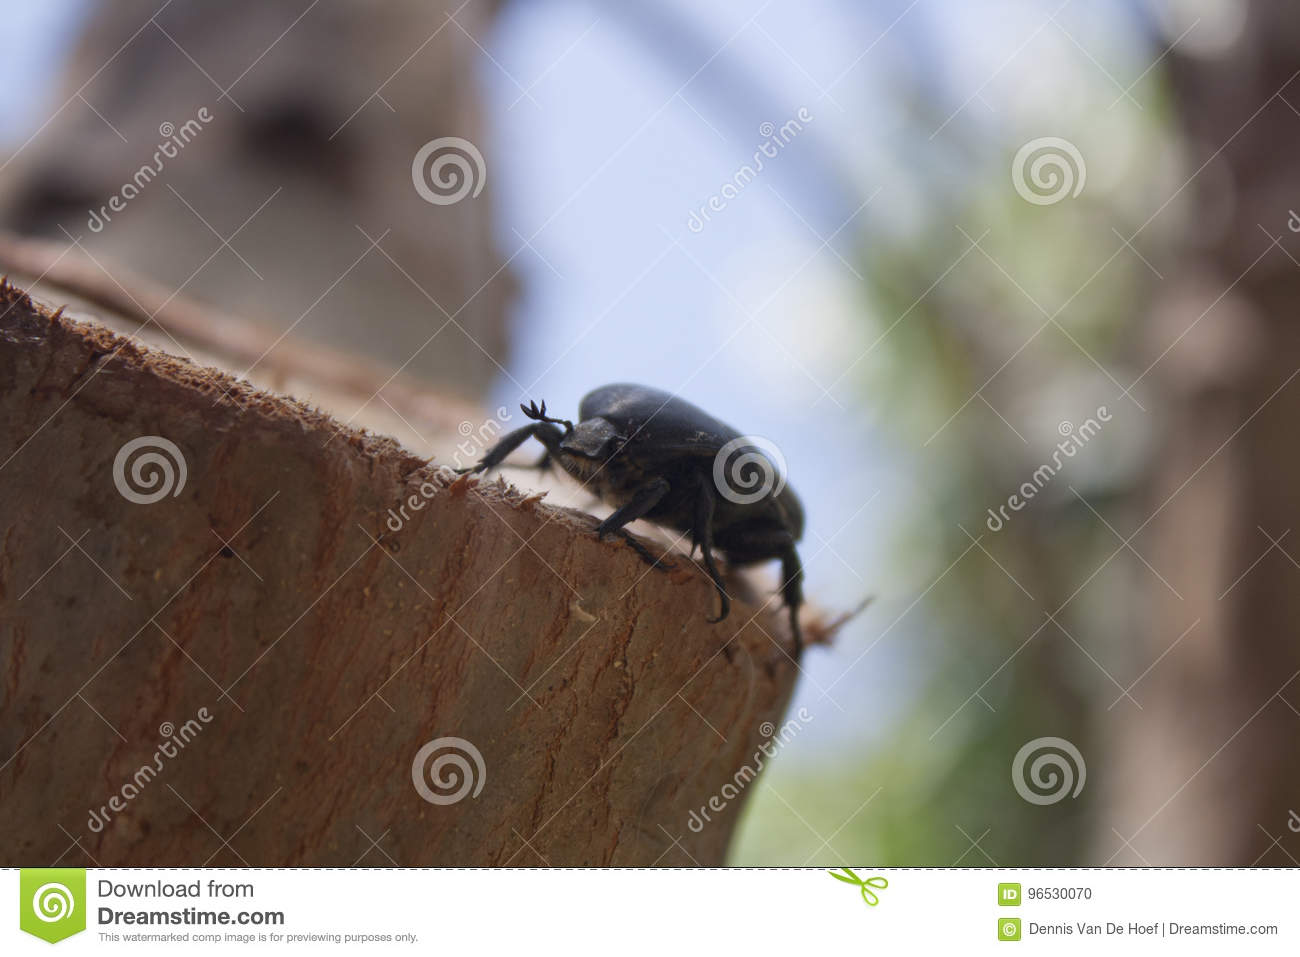 Beetle sitting on a tree. Close, insects.